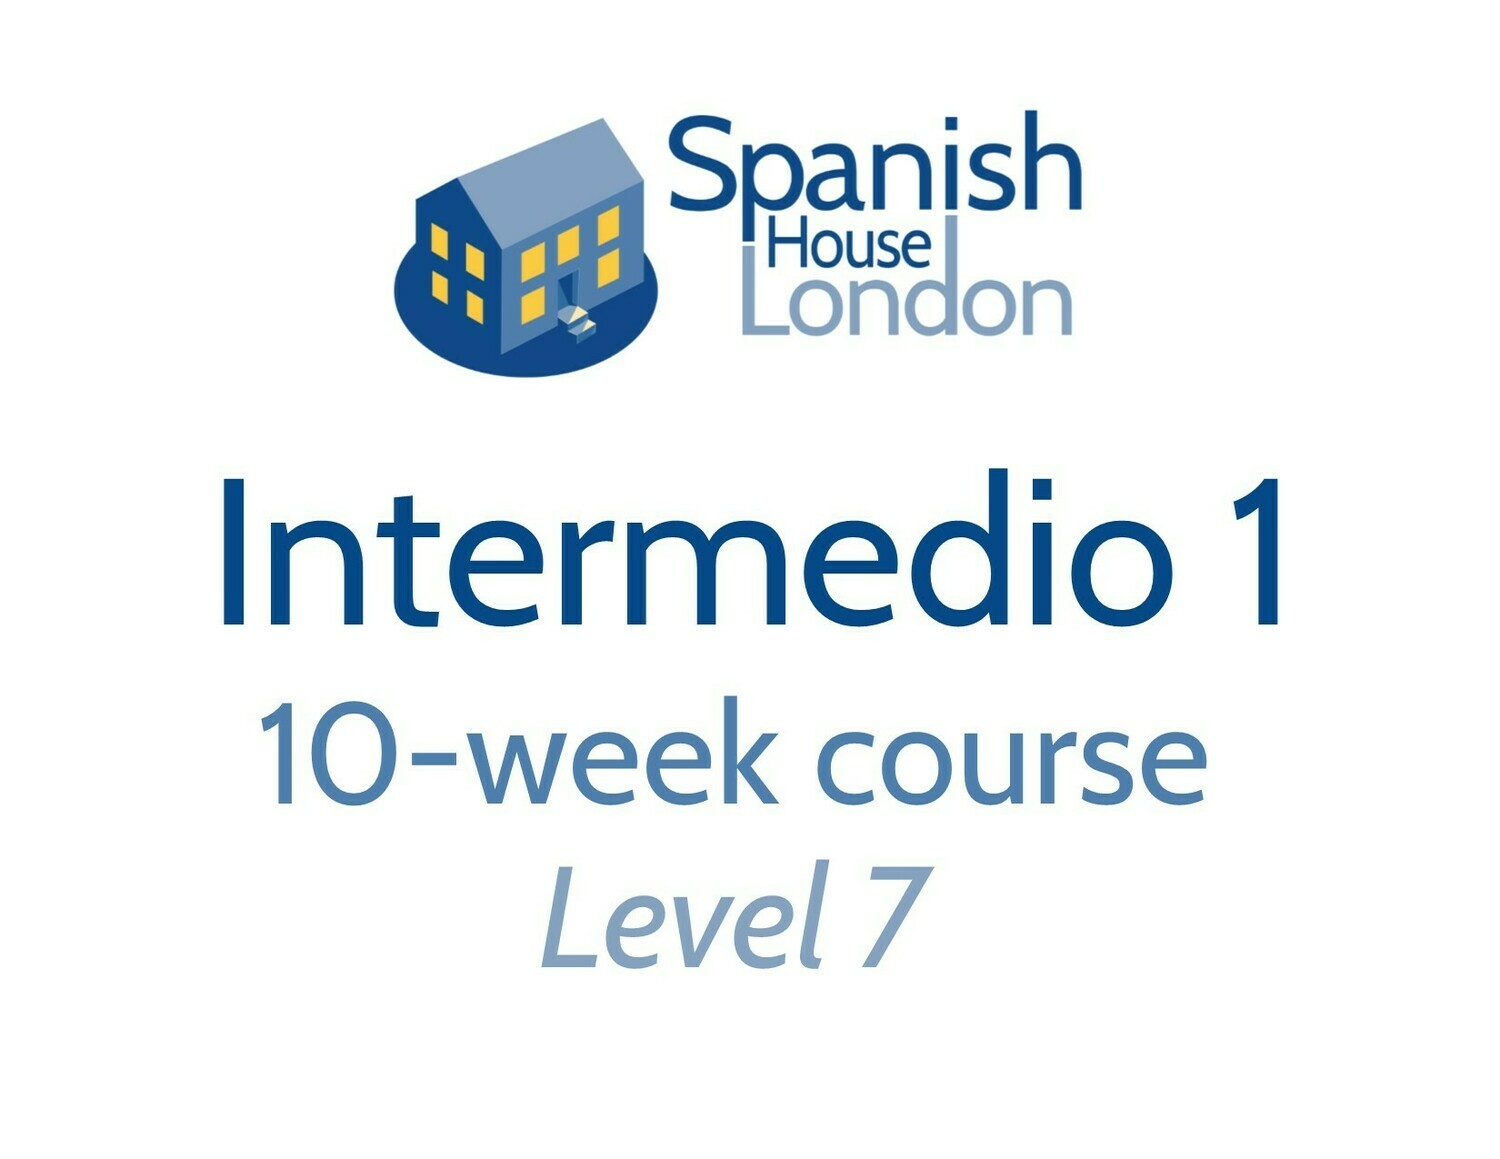 Intermedio 1 Course starting on 17th November at 6pm